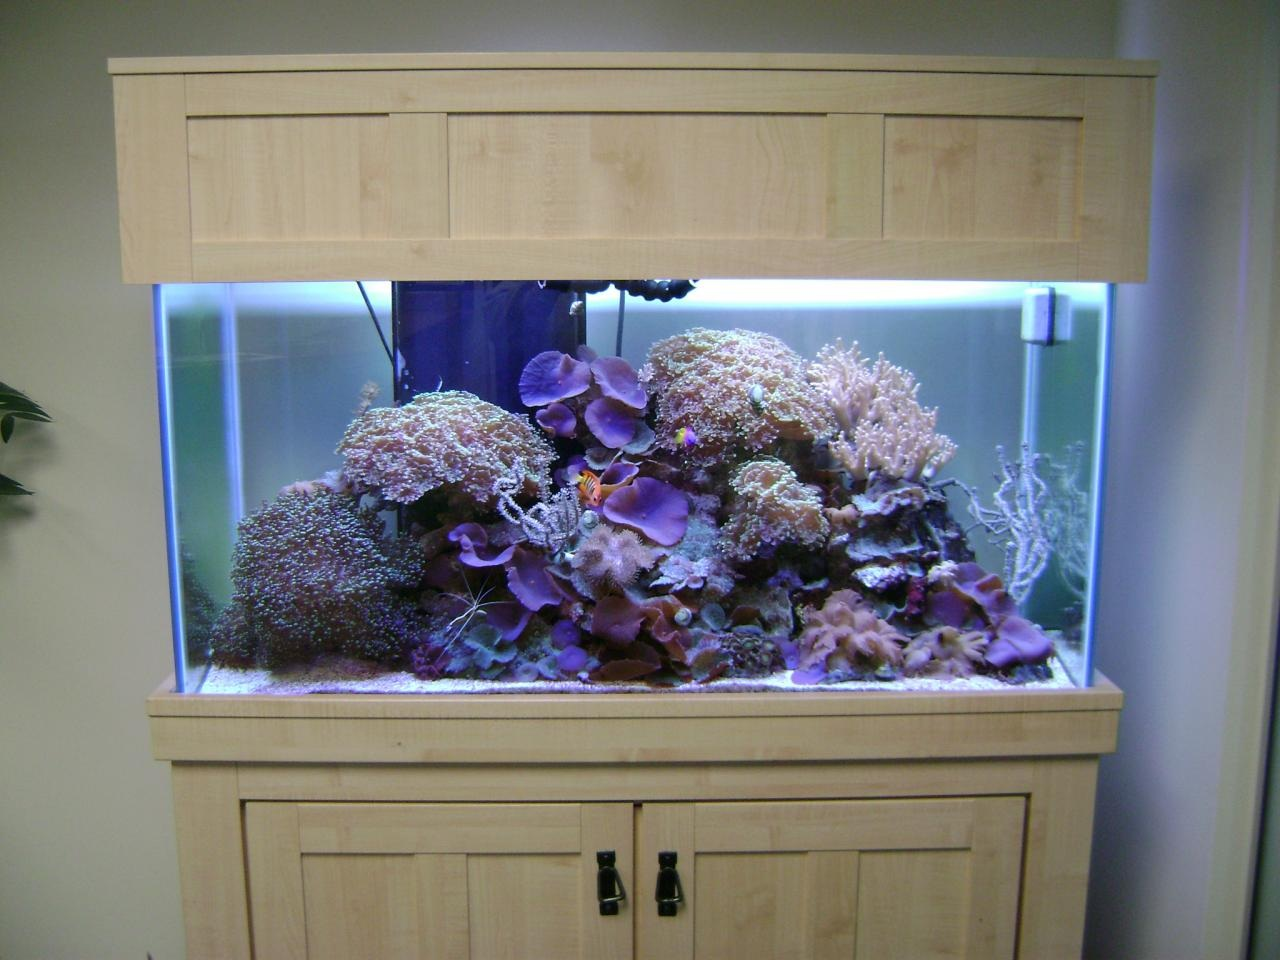 Freshwater fish store near me - Brief Description Aquatic Creations Is A Family Owned And Operaited Aquarium Specialty Company We Build Ta View More Information